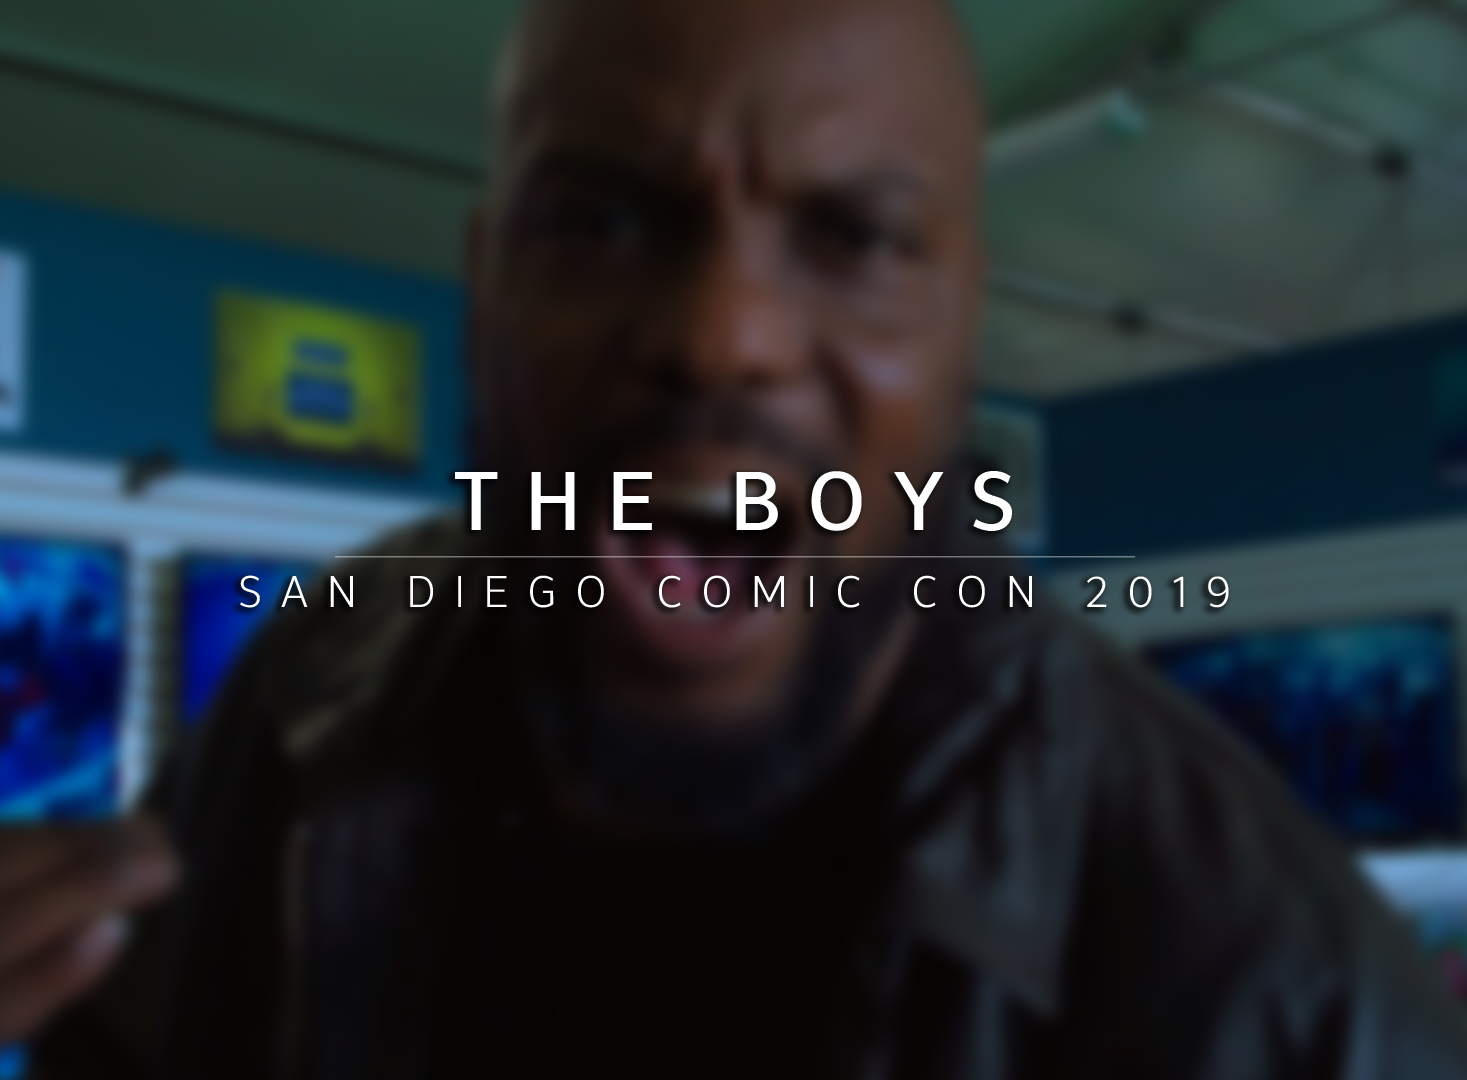 San Diego Comic-Con 2019 - The Boys